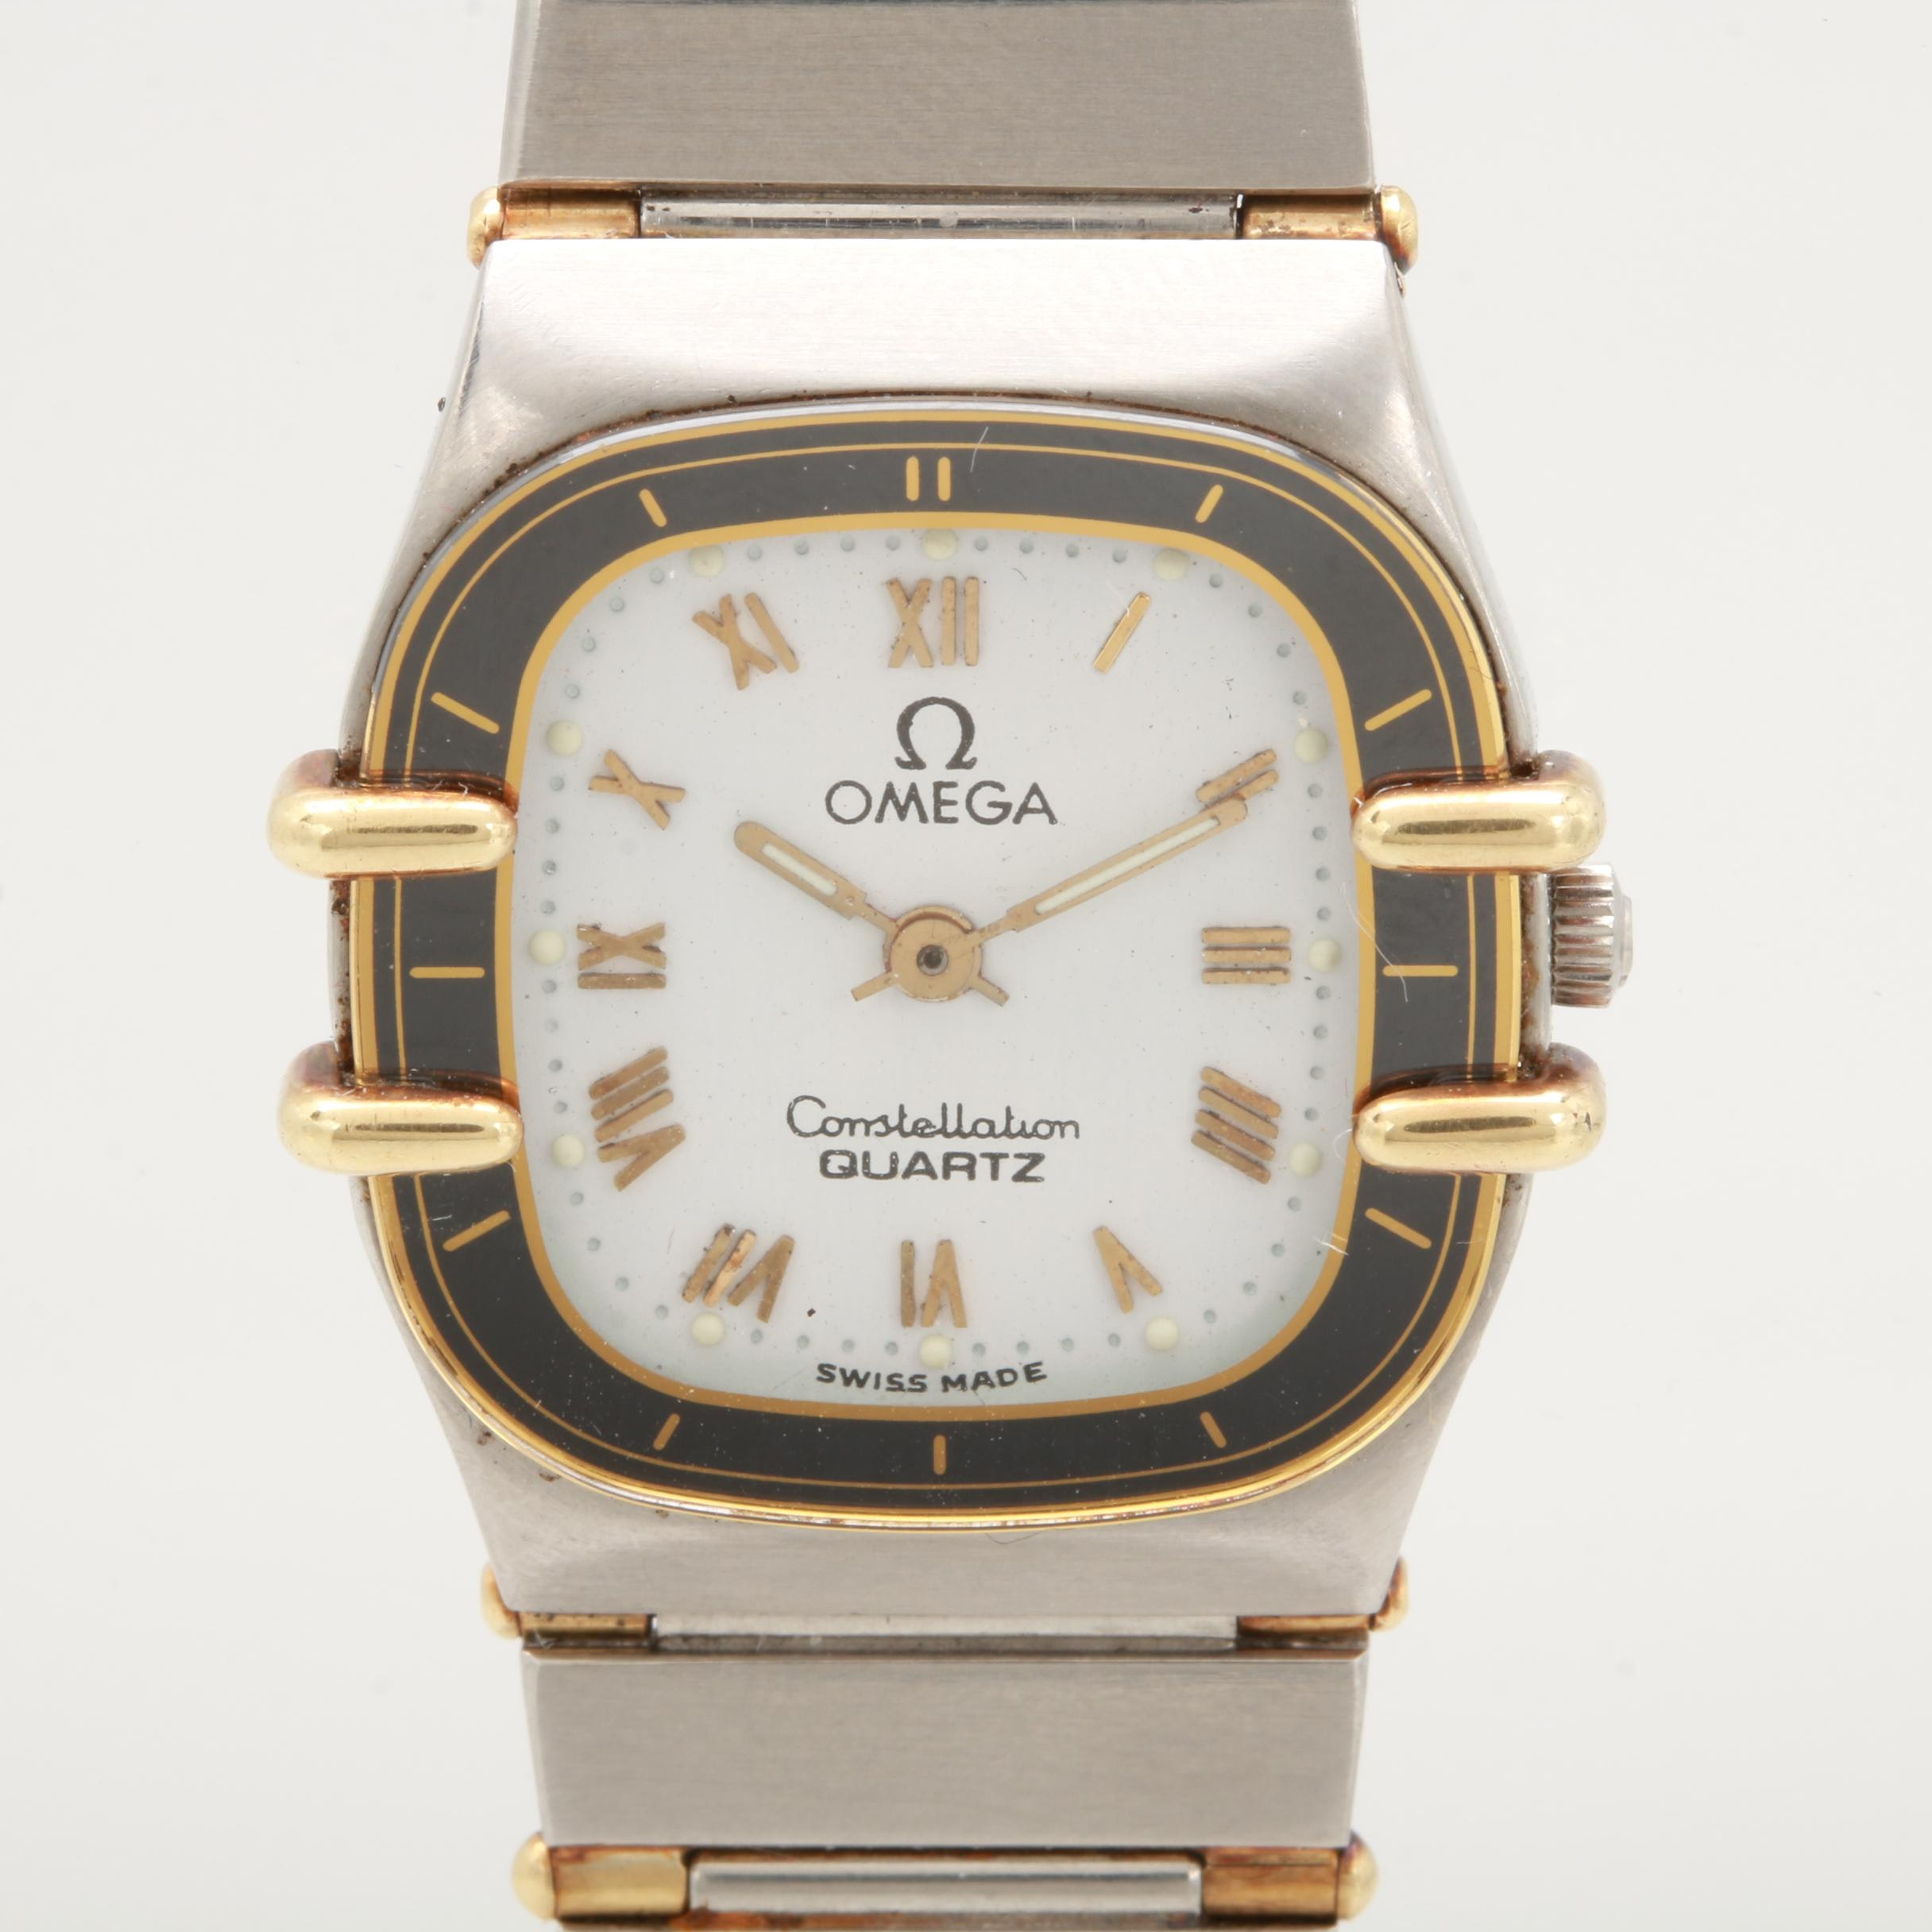 Omega Stainless Steel and 18K Yellow Gold Square White Dial Wristwatch